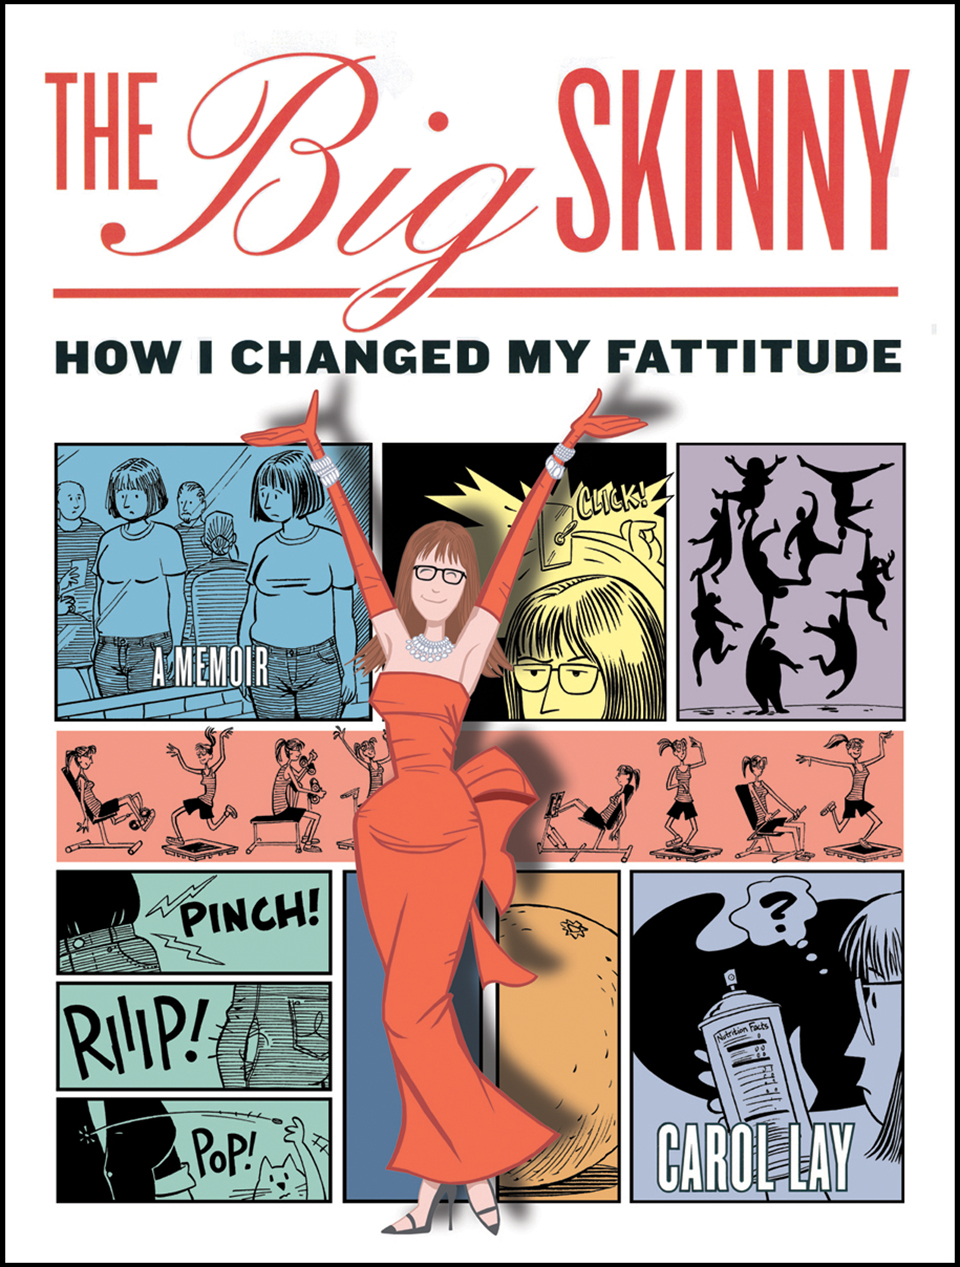 The Big Skinny: How I Changed My Fattitude - A cartoon diet book – part memoir – that advocates healthy choices. 208 pages in full color from Villard, an imprint of Random House, 2008.